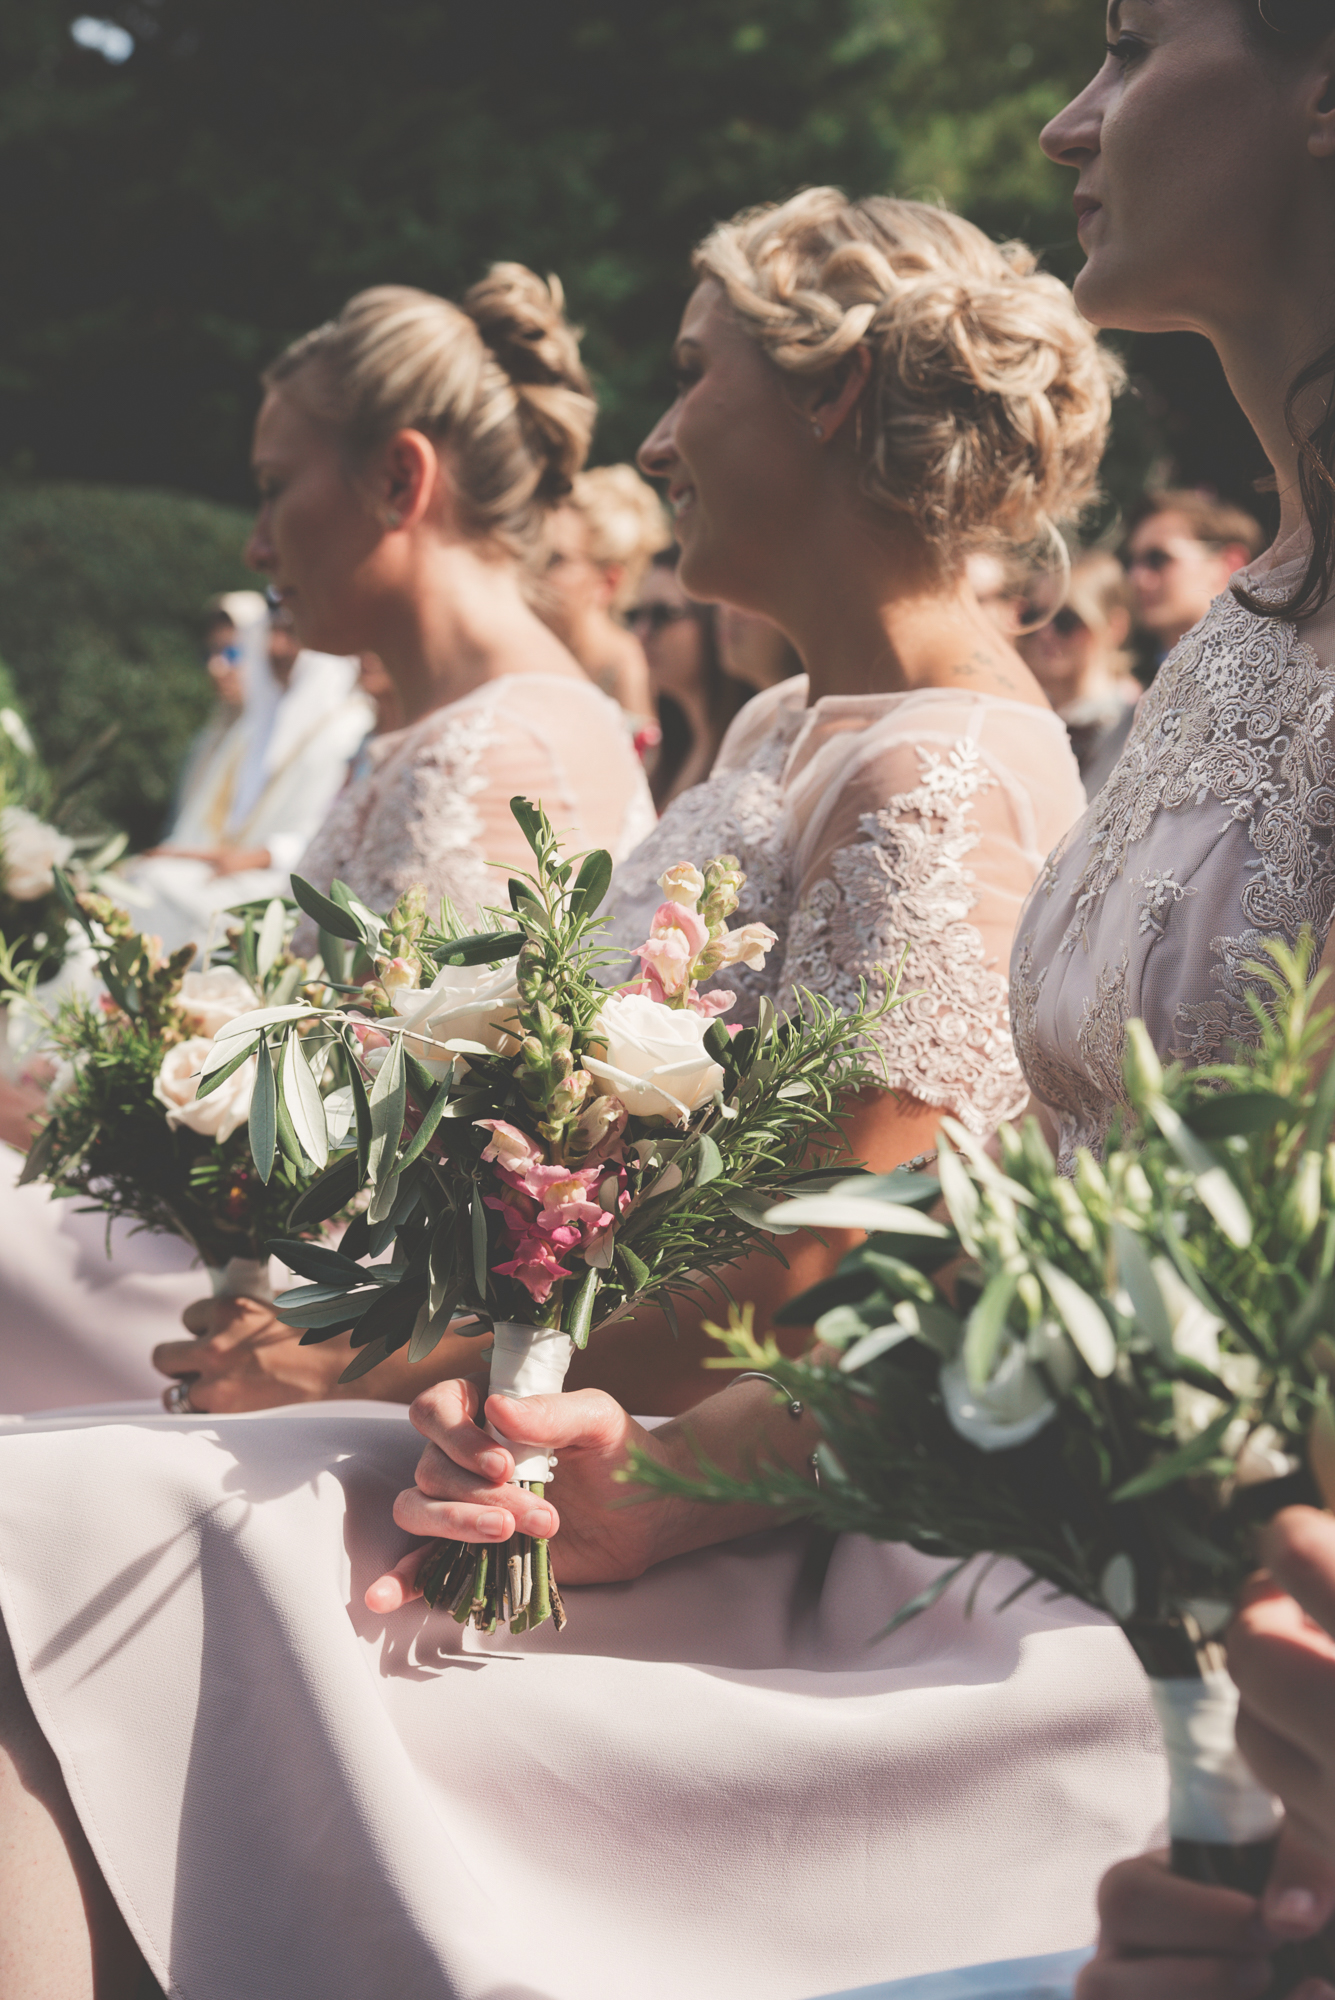 Wedding flowers and bridesmaids